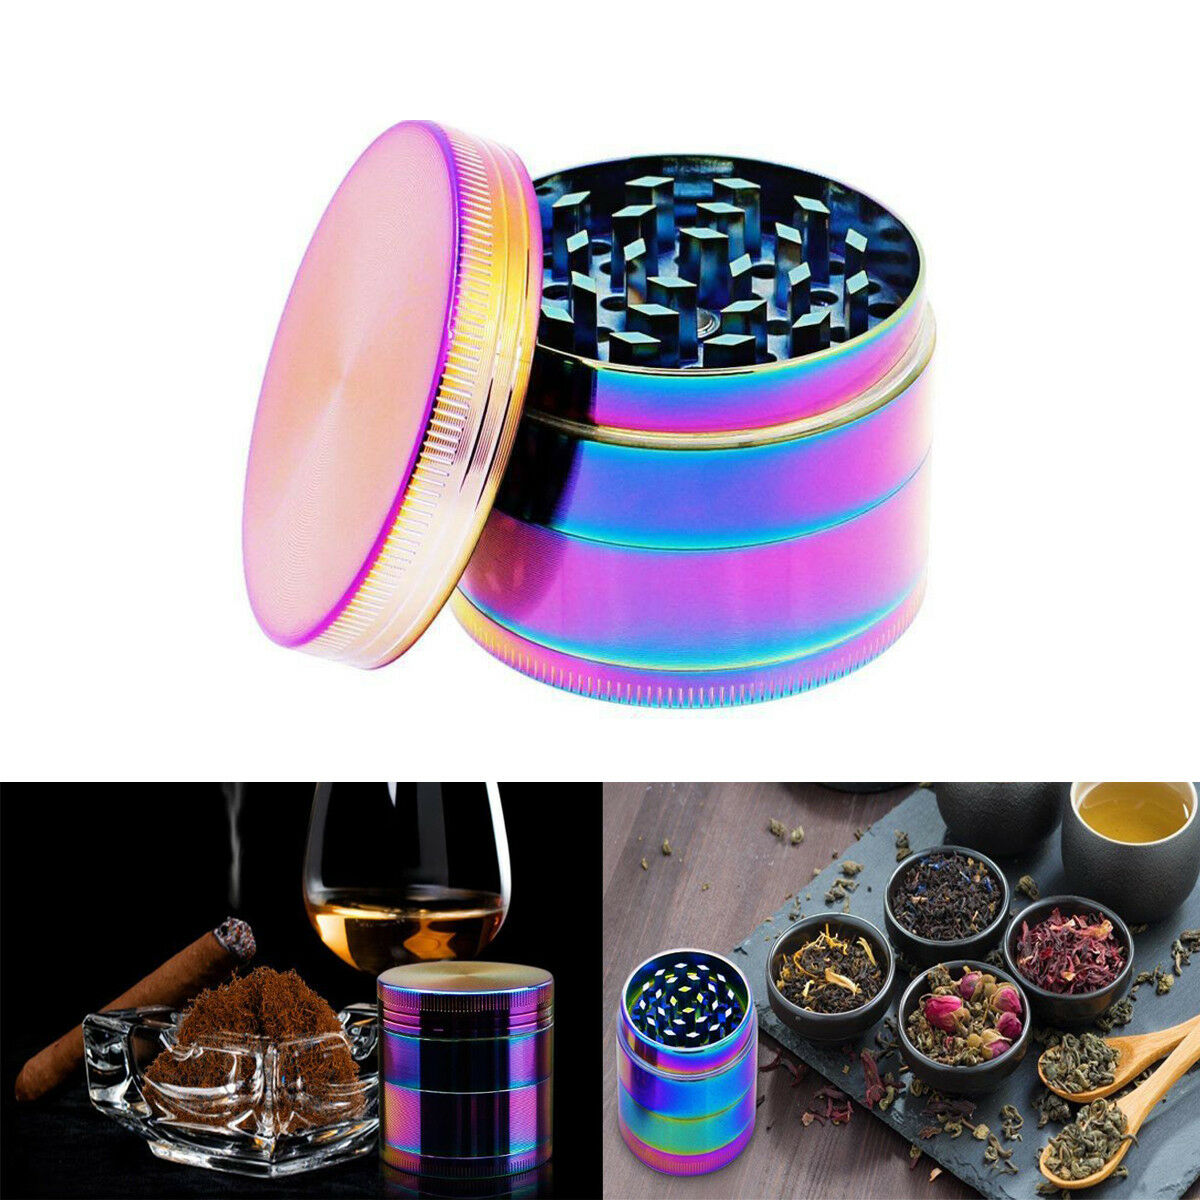 "Large Spice Tobacco Herb Weed Grinder-4 Pcs with Pollen Catcher-50MM"" Rainbow US 1"